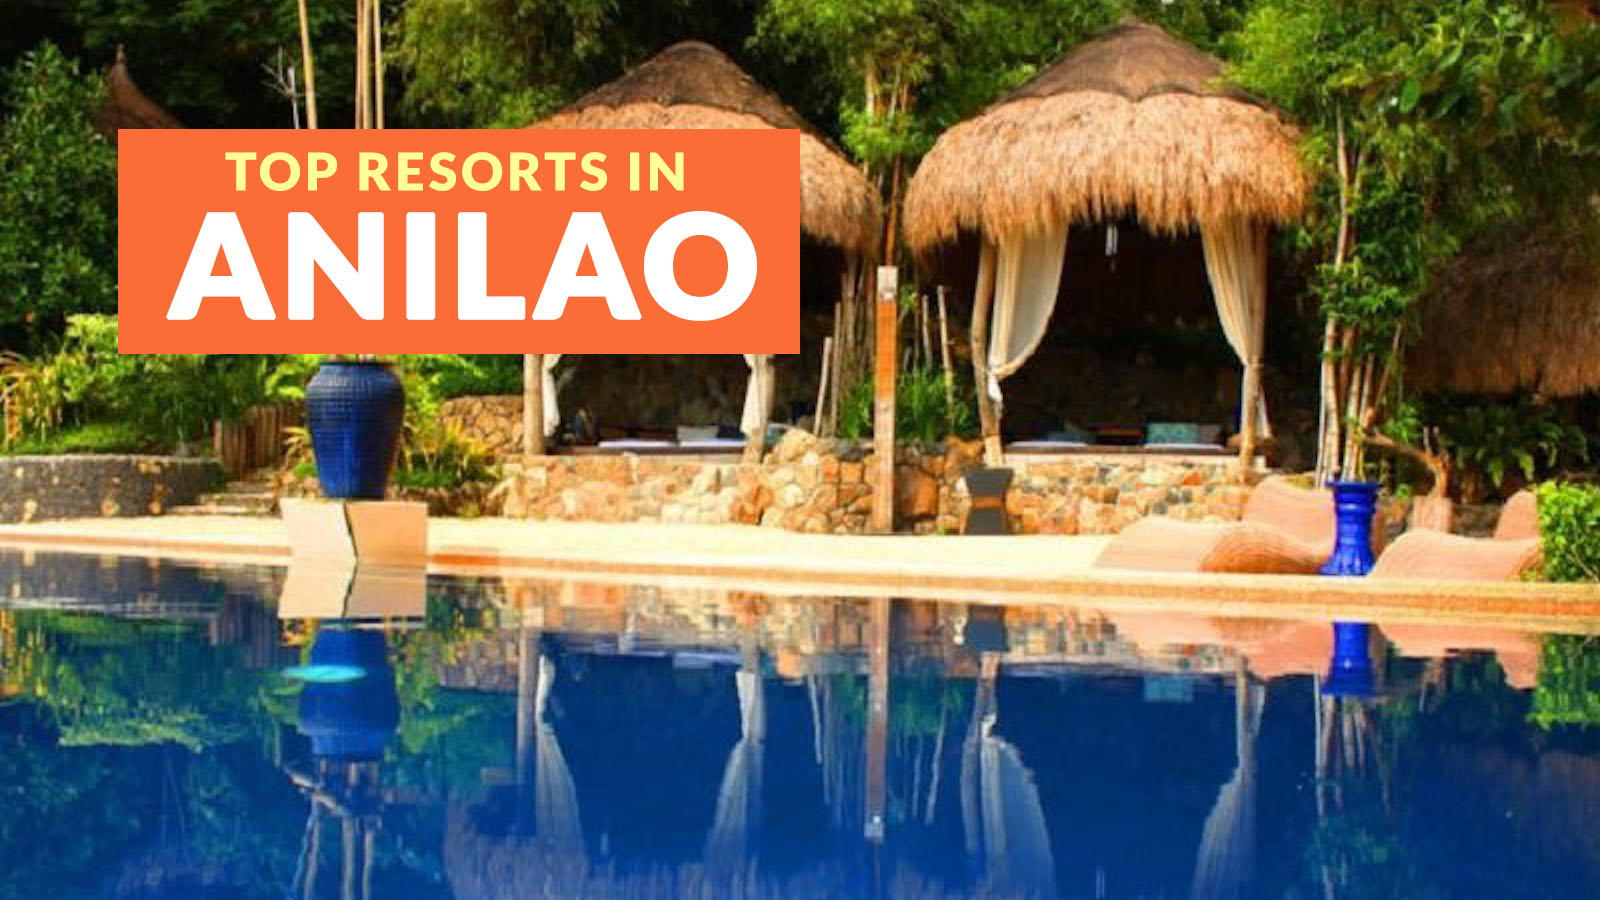 Anilao Batangas Top 5 Beach And Dive Resorts Philippine Beach Guide